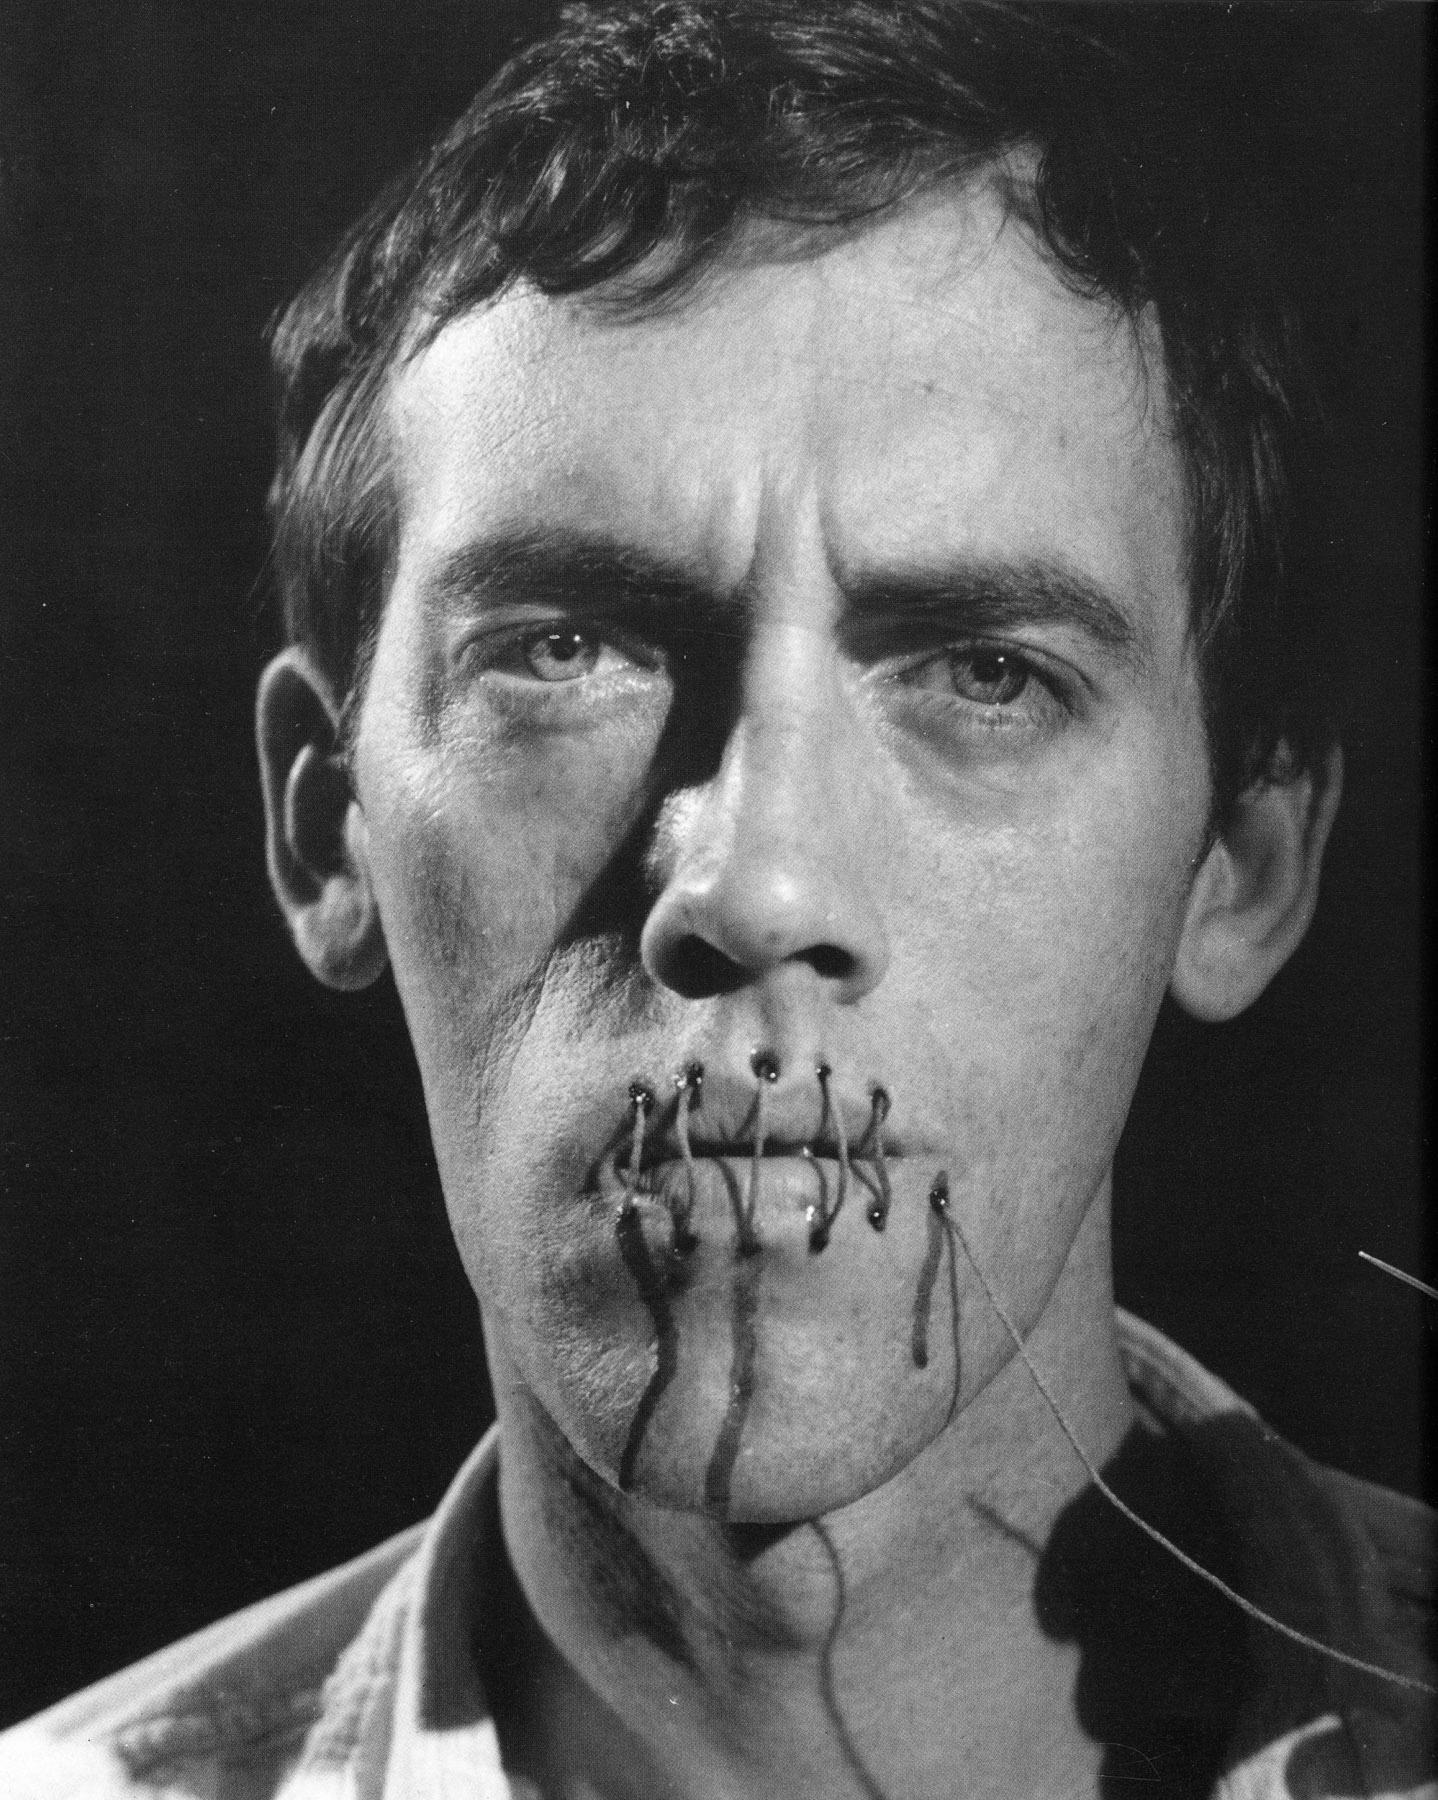 Untitled , 1990  David Wojnarowicz, (in collaboration with Phil Zwickler and Rosa von Praunheim), still from the film  Silence = Death,  Courtesy of the estate of David Wojnarowicz and P.P.O.W., New York